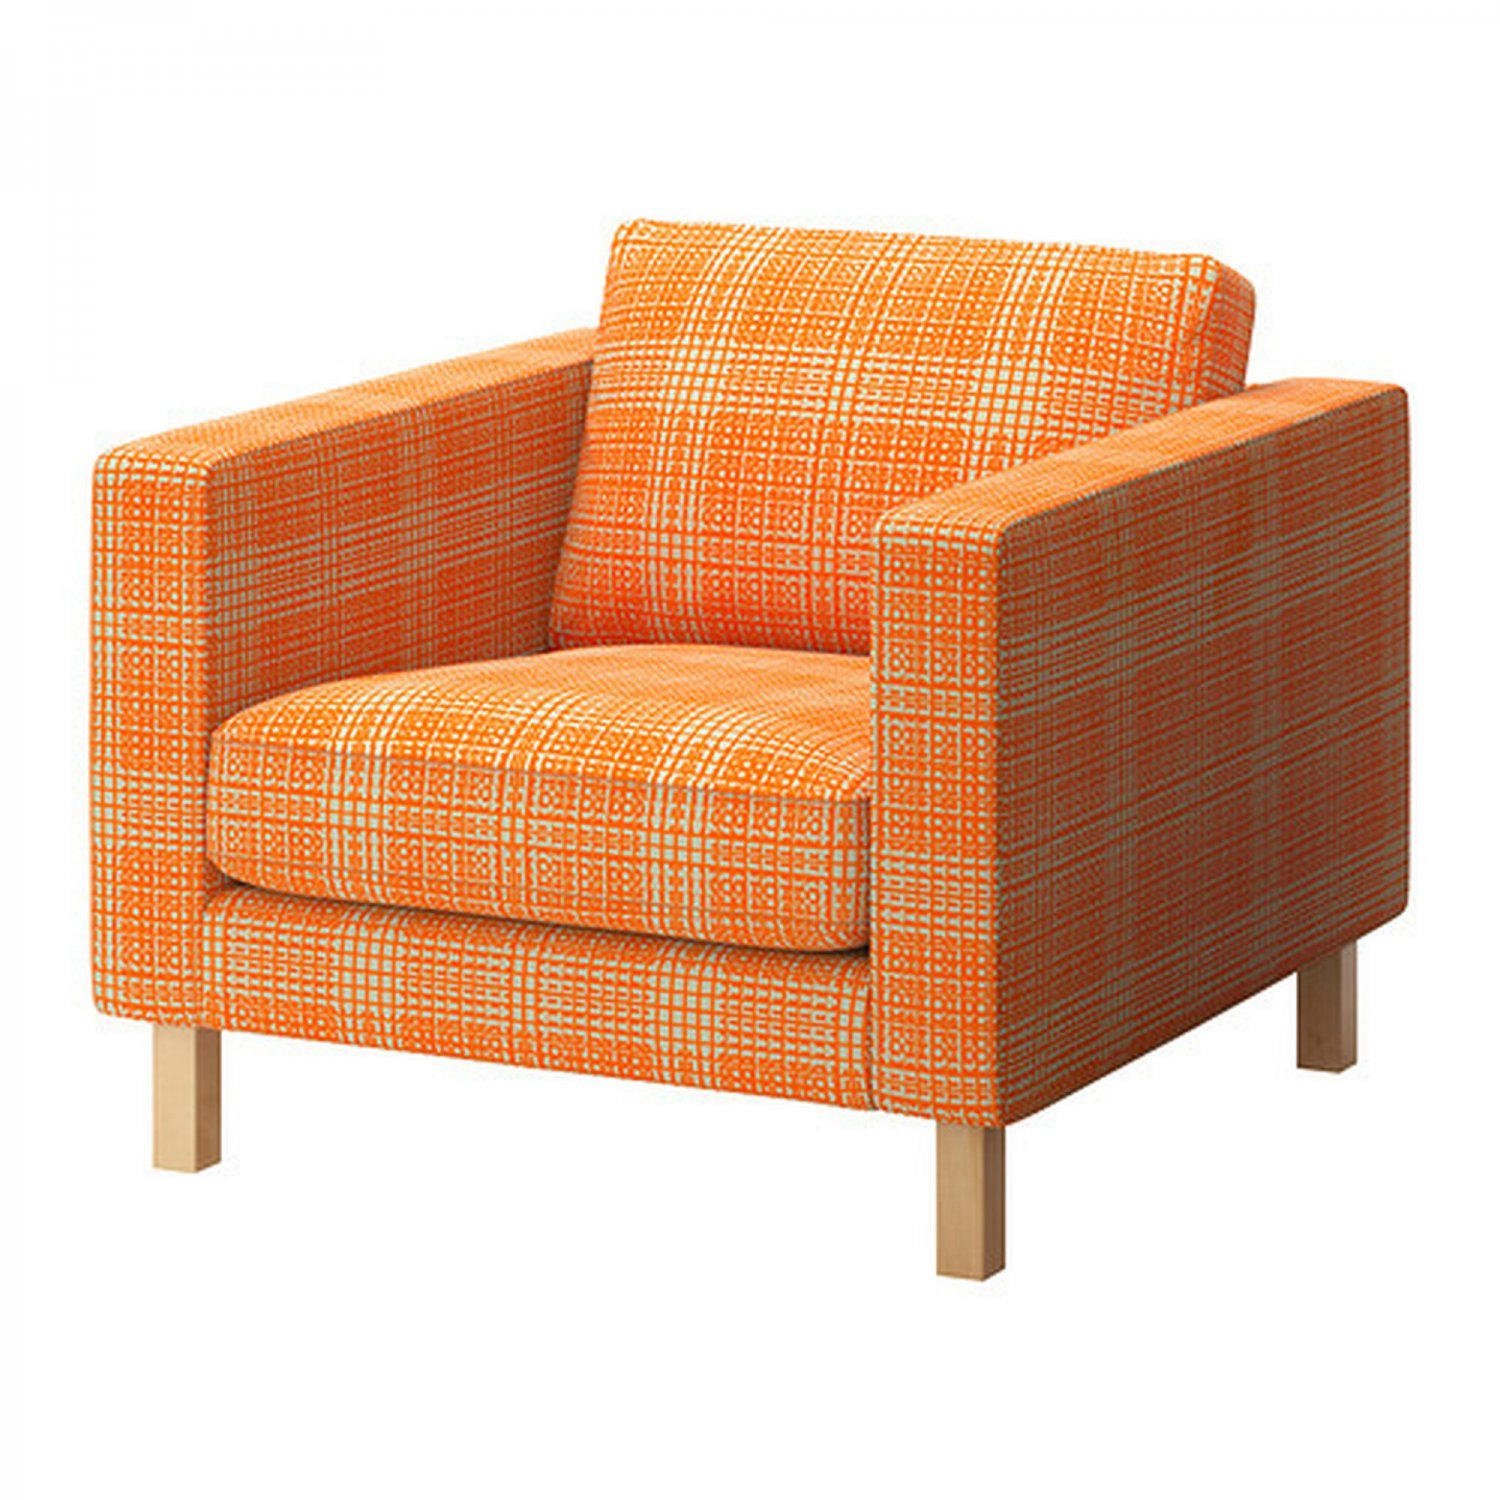 ikea karlstad chair reupholstering a armchair slipcover cover husie orange